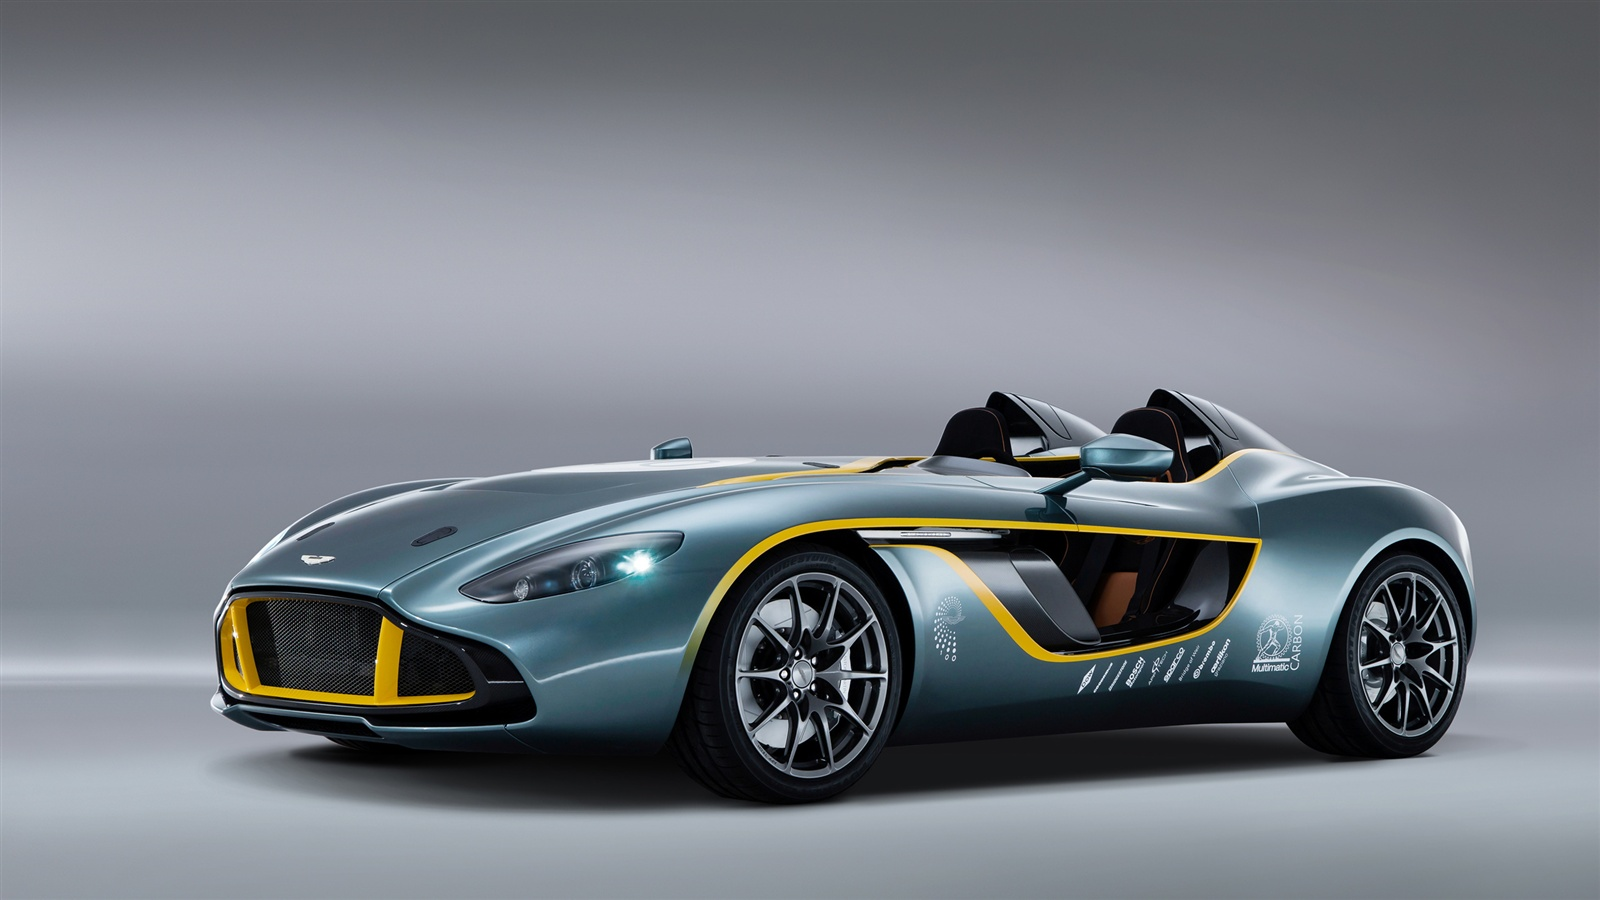 The Best 100 Hd And Qhd Wallpapers From 2015 Works For: 2013 Aston Martin CC100 Speedster Konzept Supersportwagen